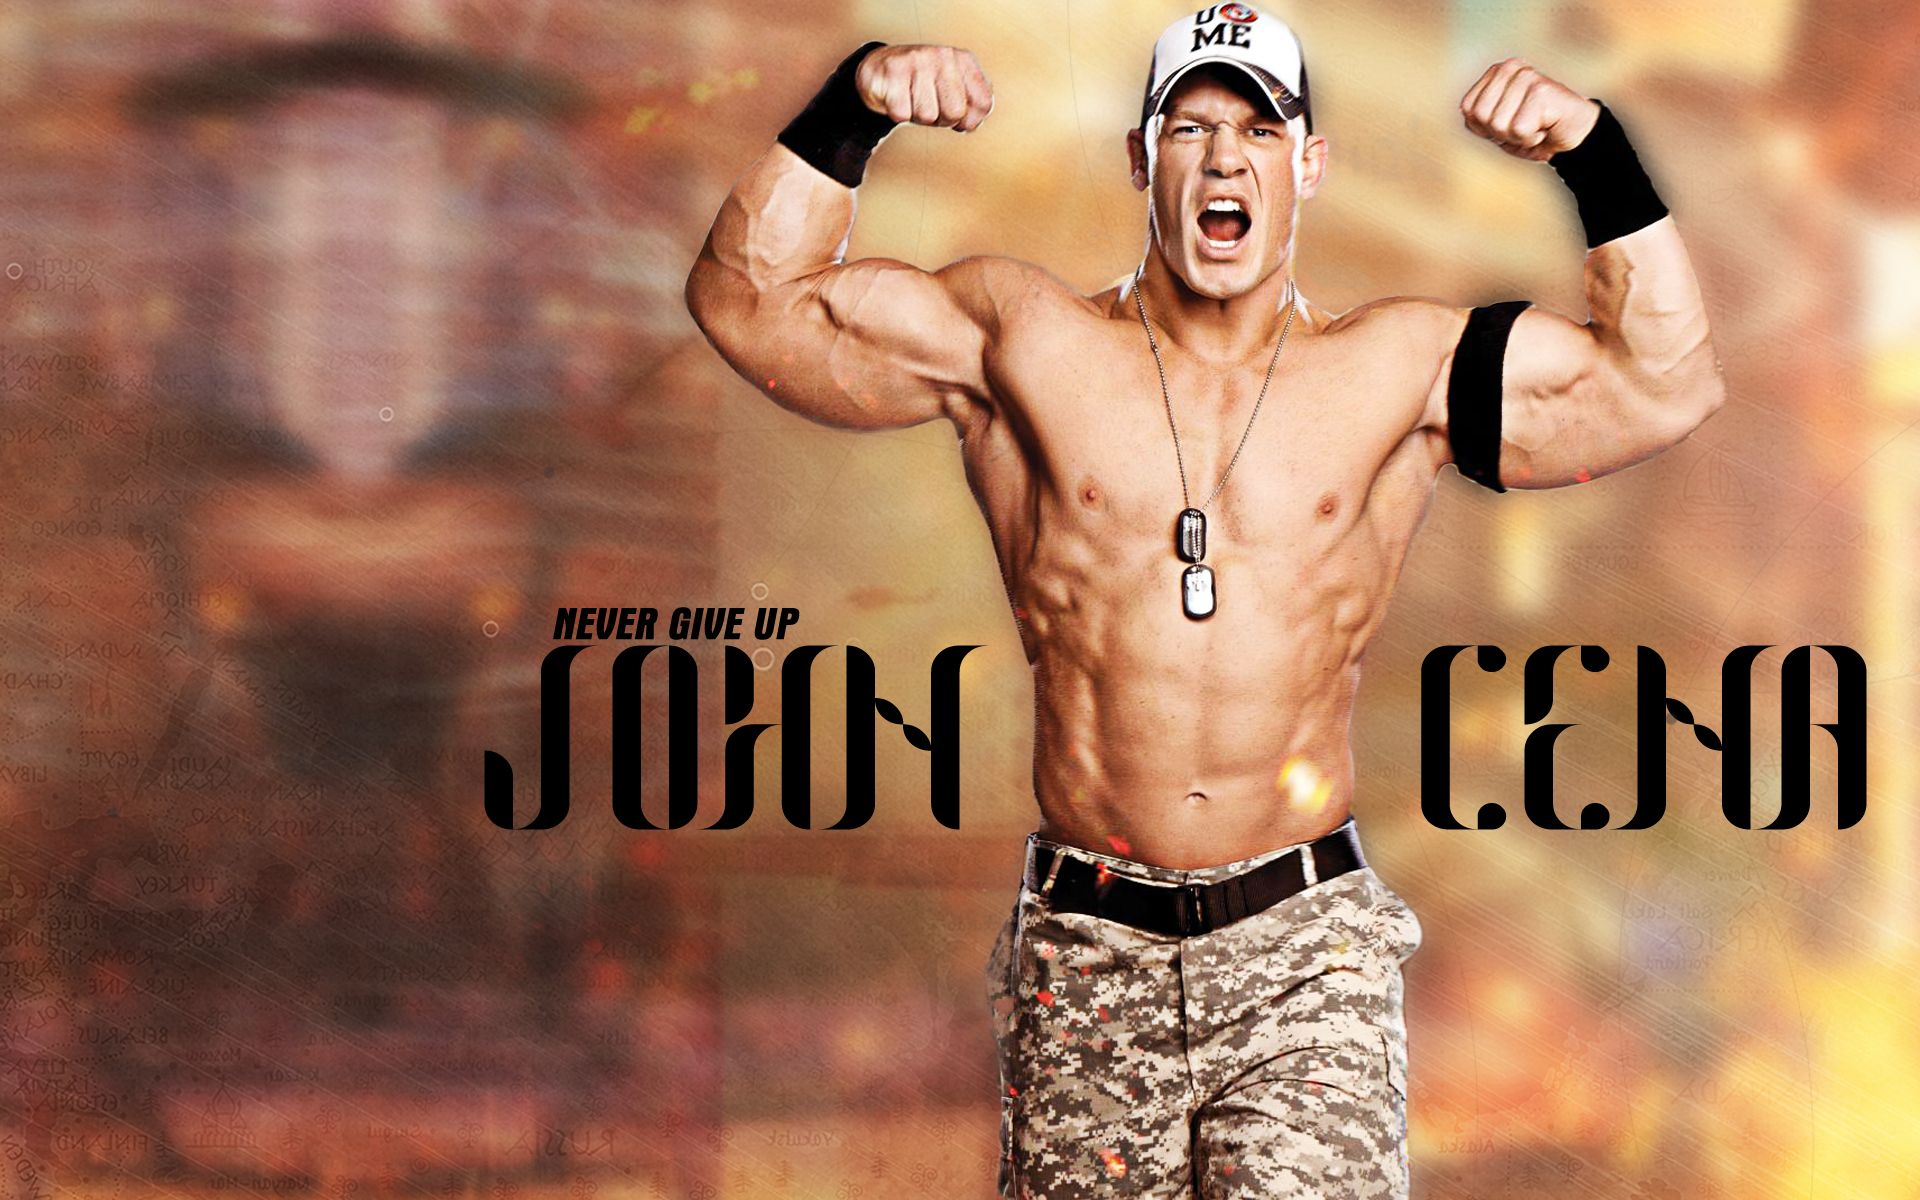 john cena | wwe wallpapers work | pinterest | wwe wallpapers, john